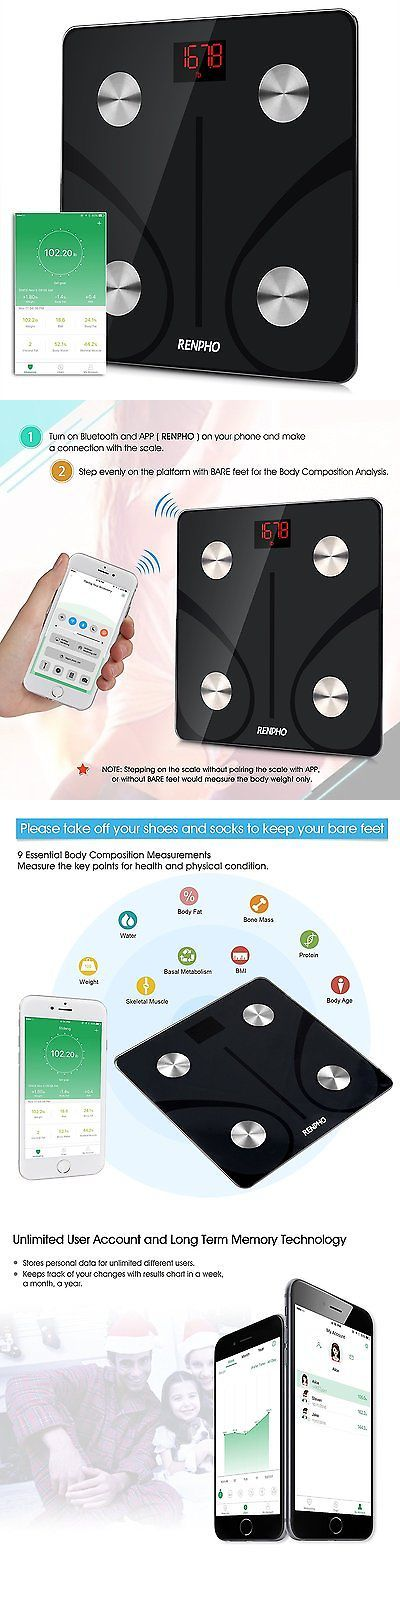 Scales: Renpho Bluetooth Body Fat Scale - Fda Approved - Smart Body Composition Analyzer -> BUY IT NOW ONLY: $34.82 on eBay!